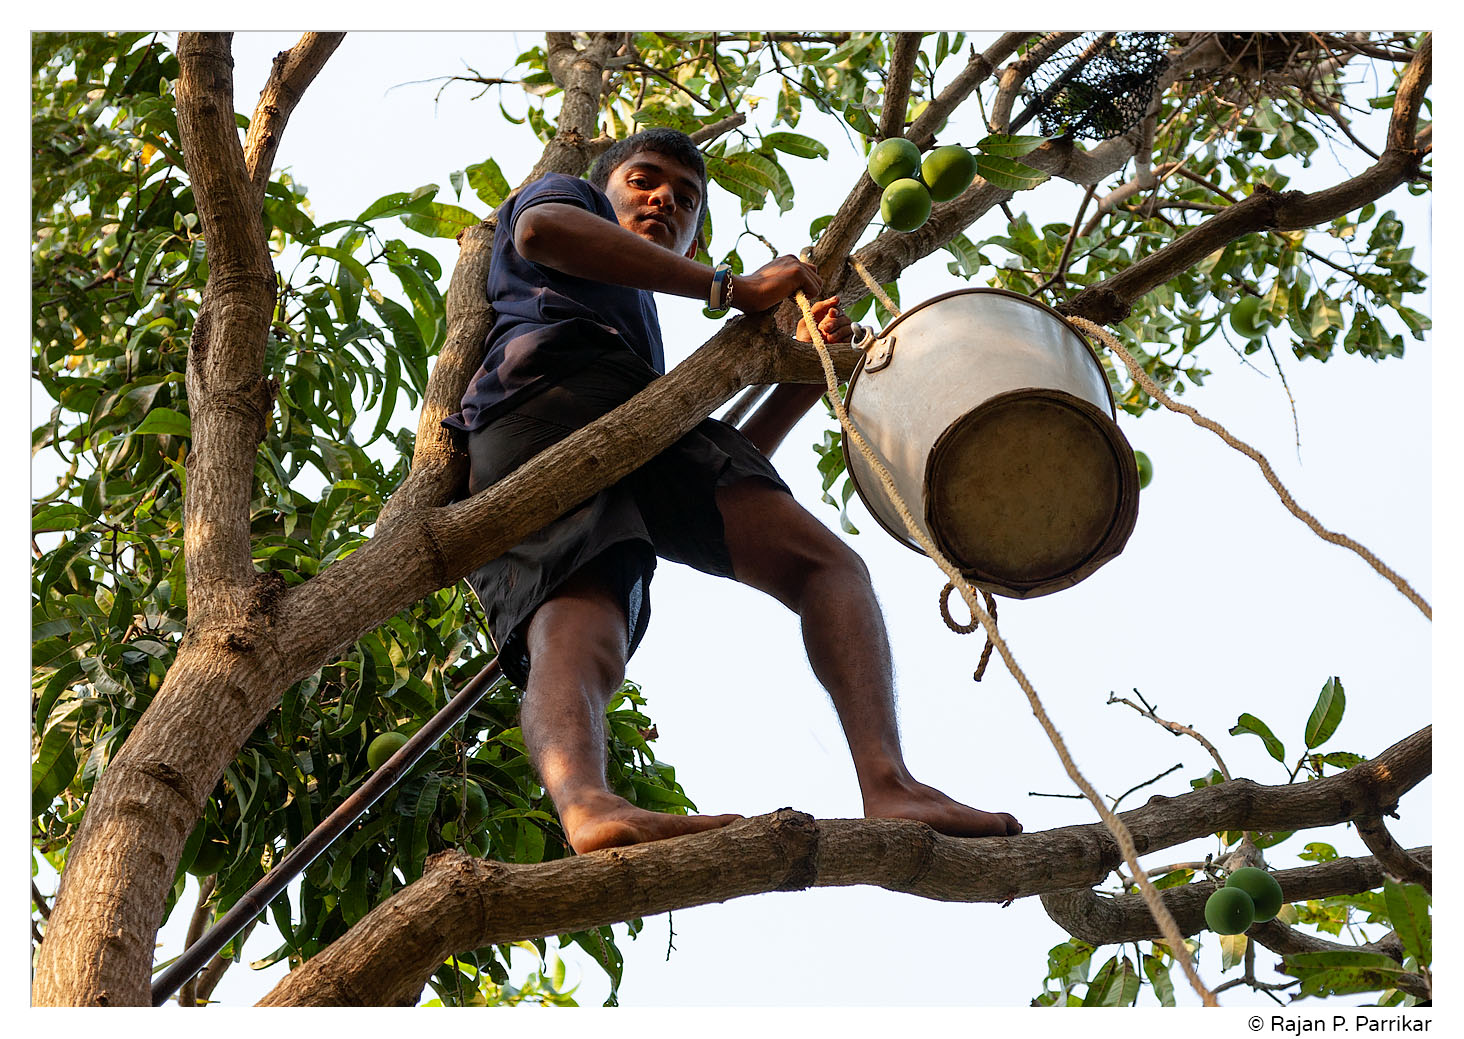 Harvesting mangoes in Goa